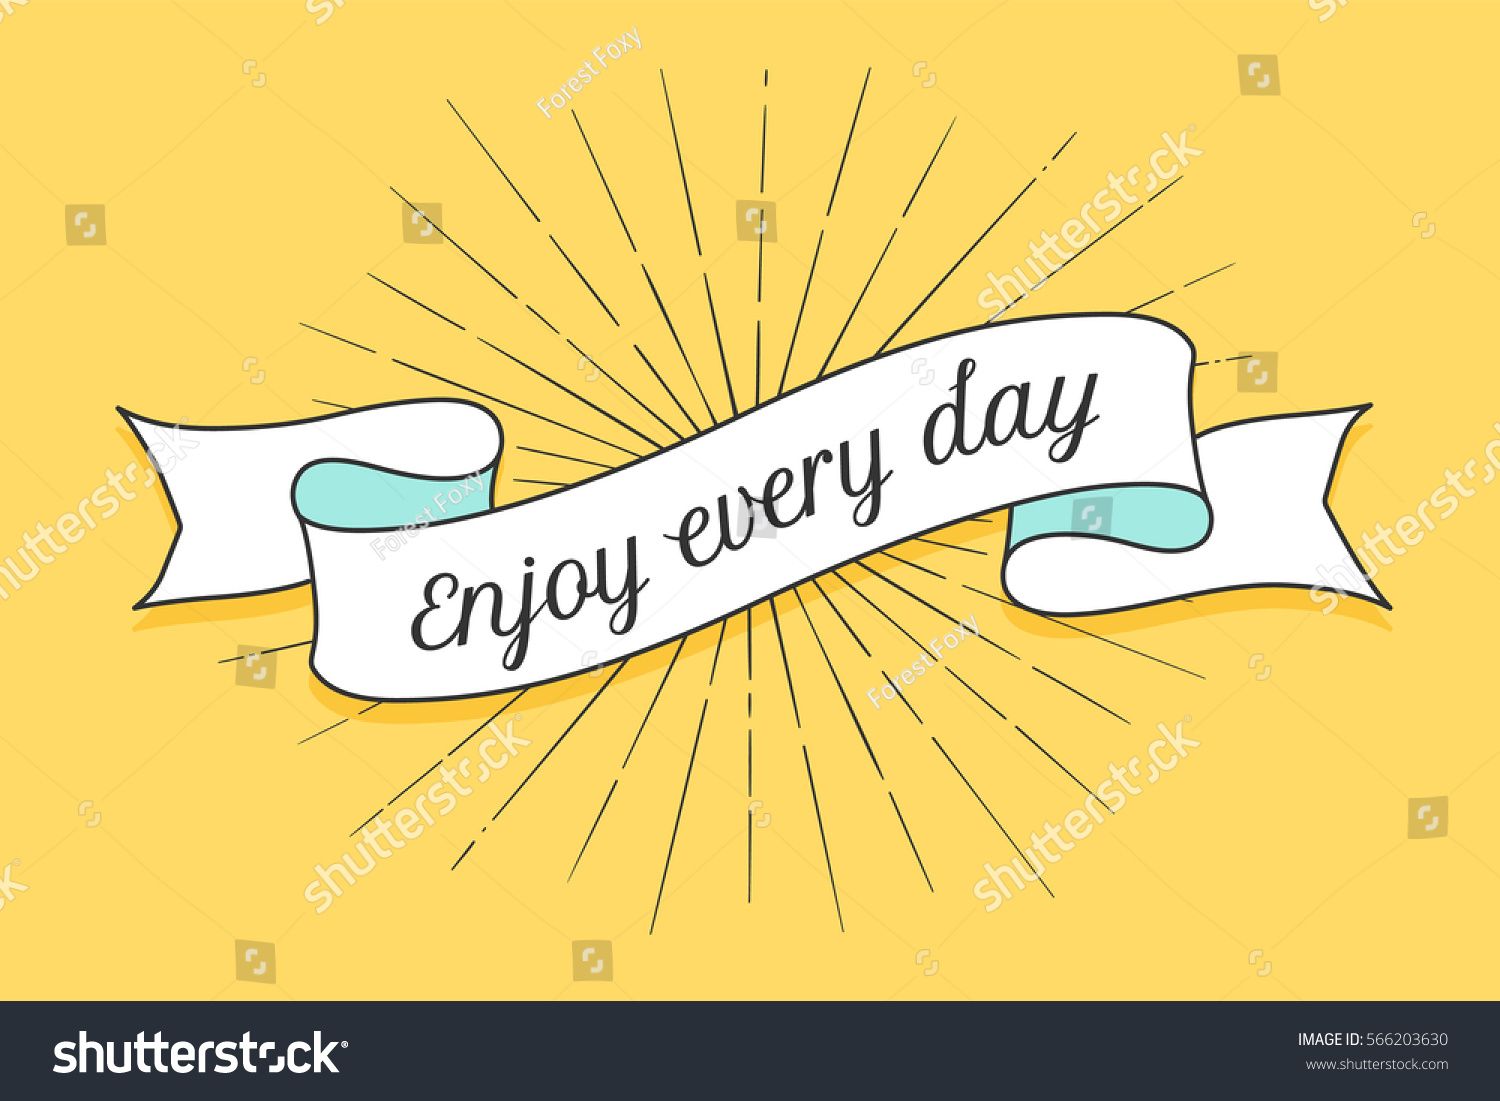 Ribbon text enjoy every day colorful stock vector - Text banner design ...